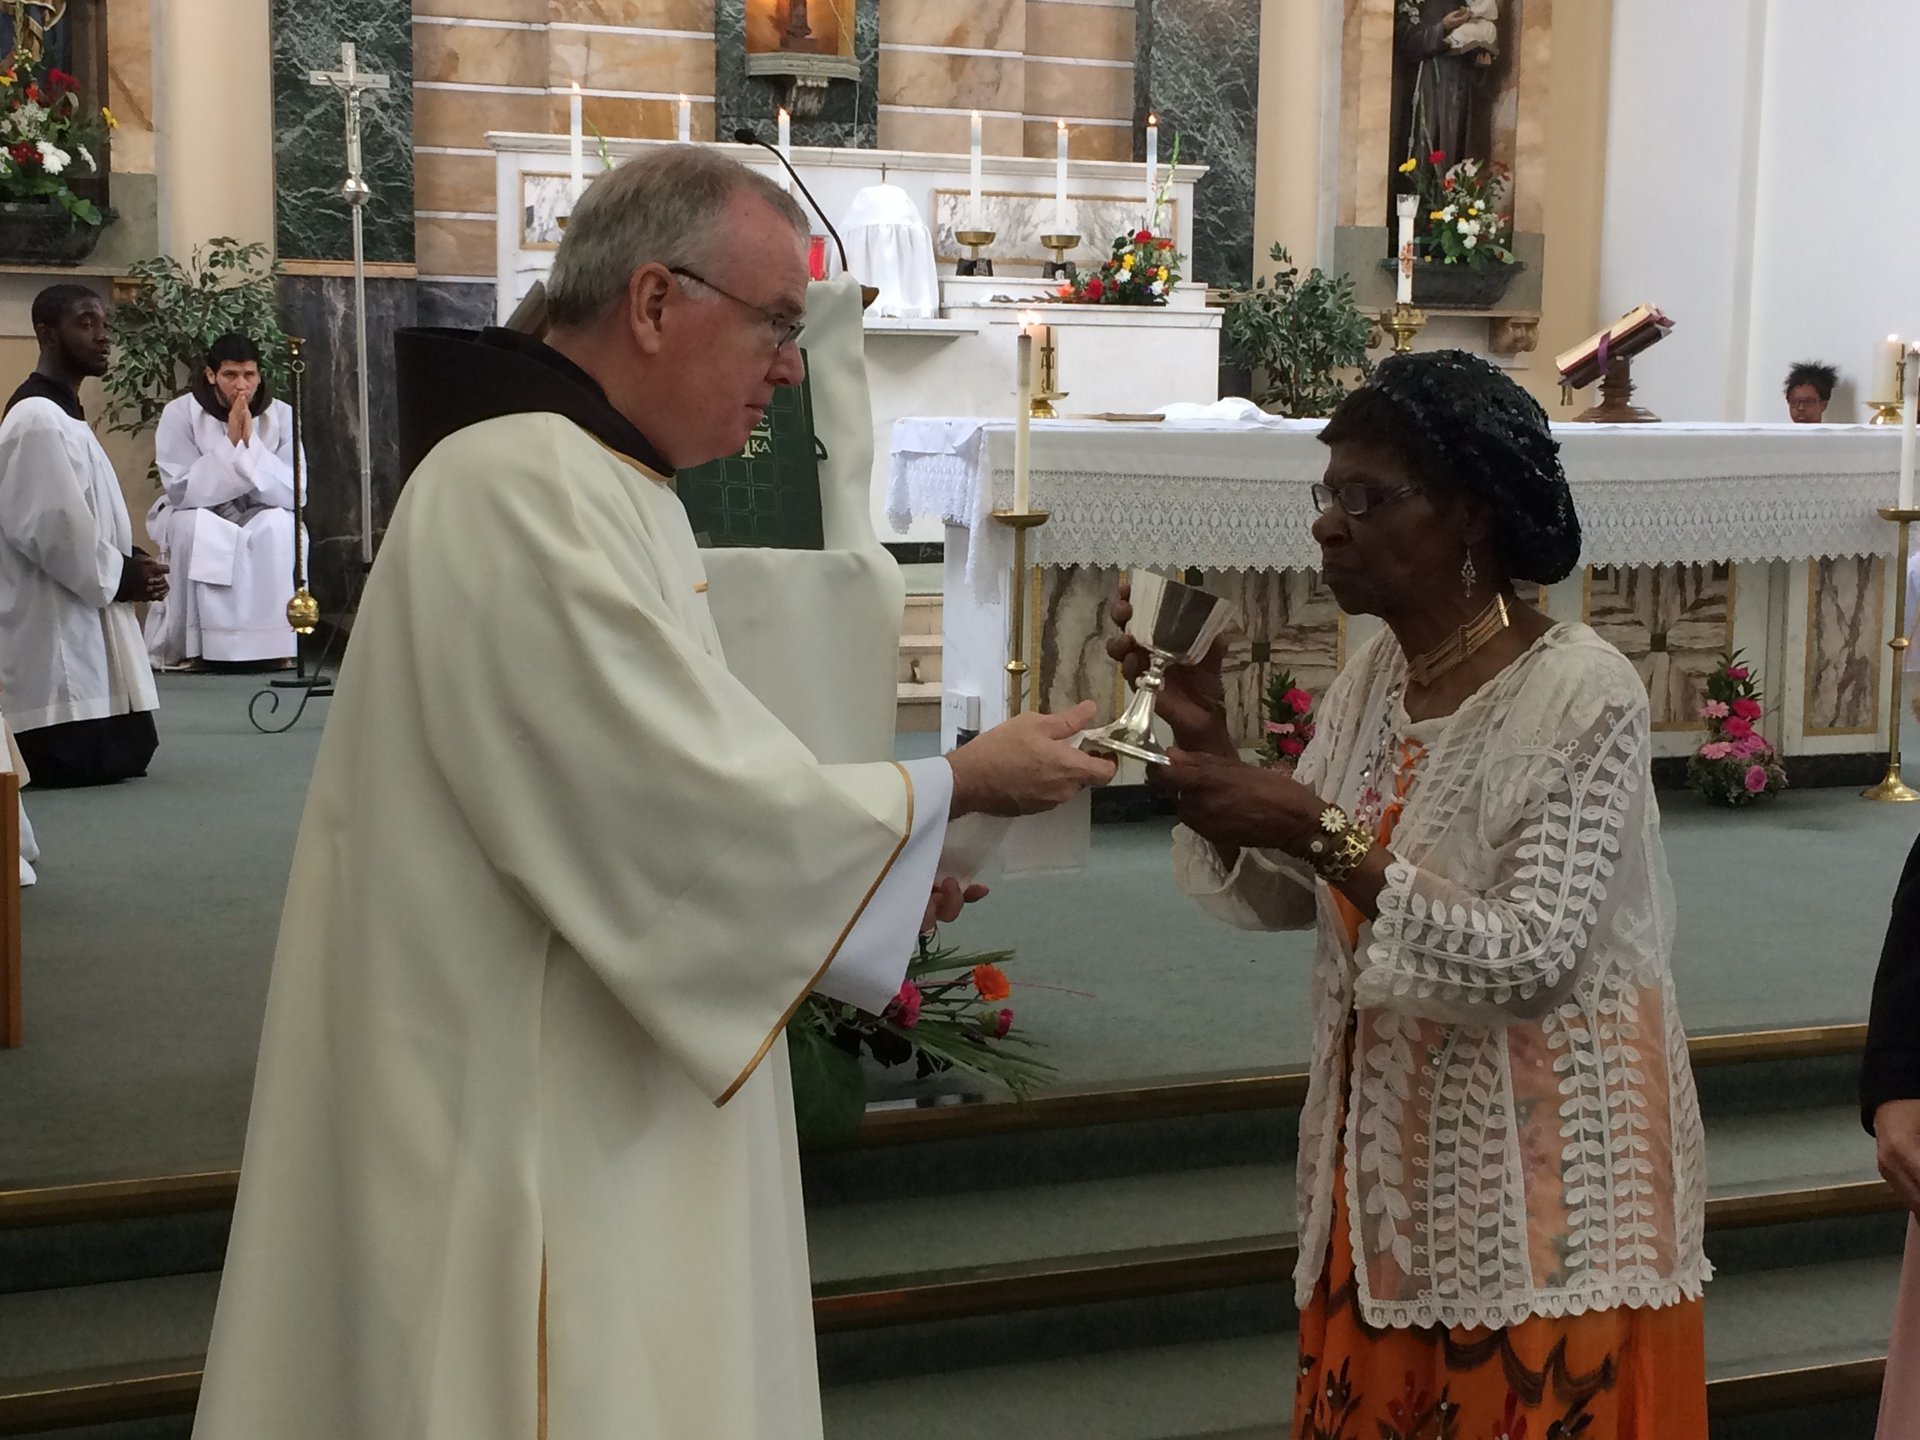 Deacon Michael administering holy communion